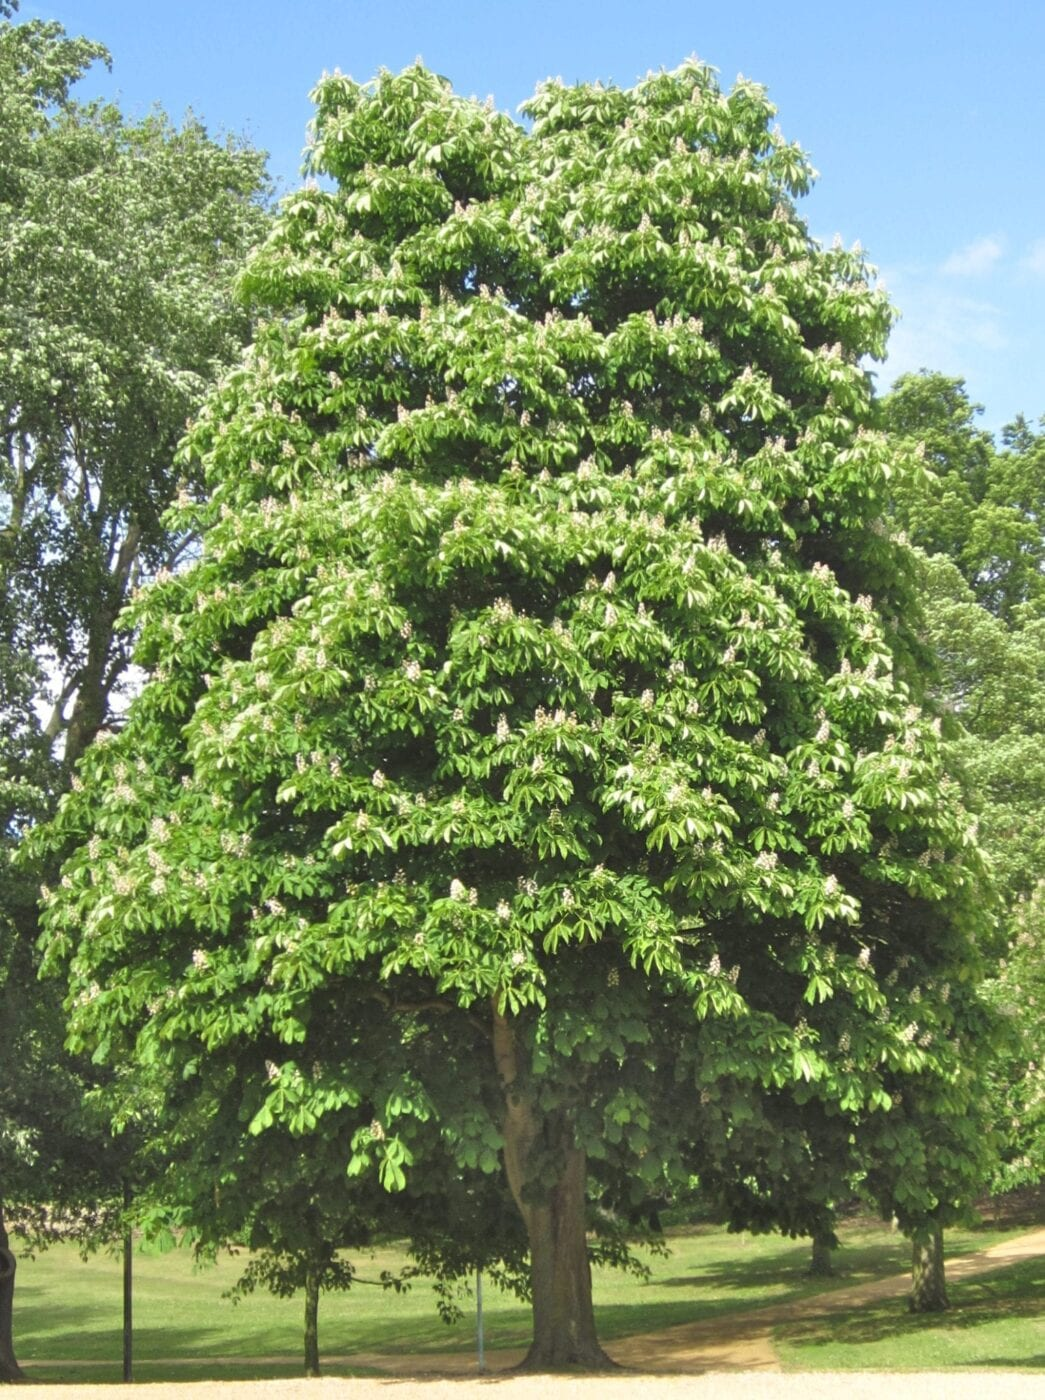 horse chestnut tree in May